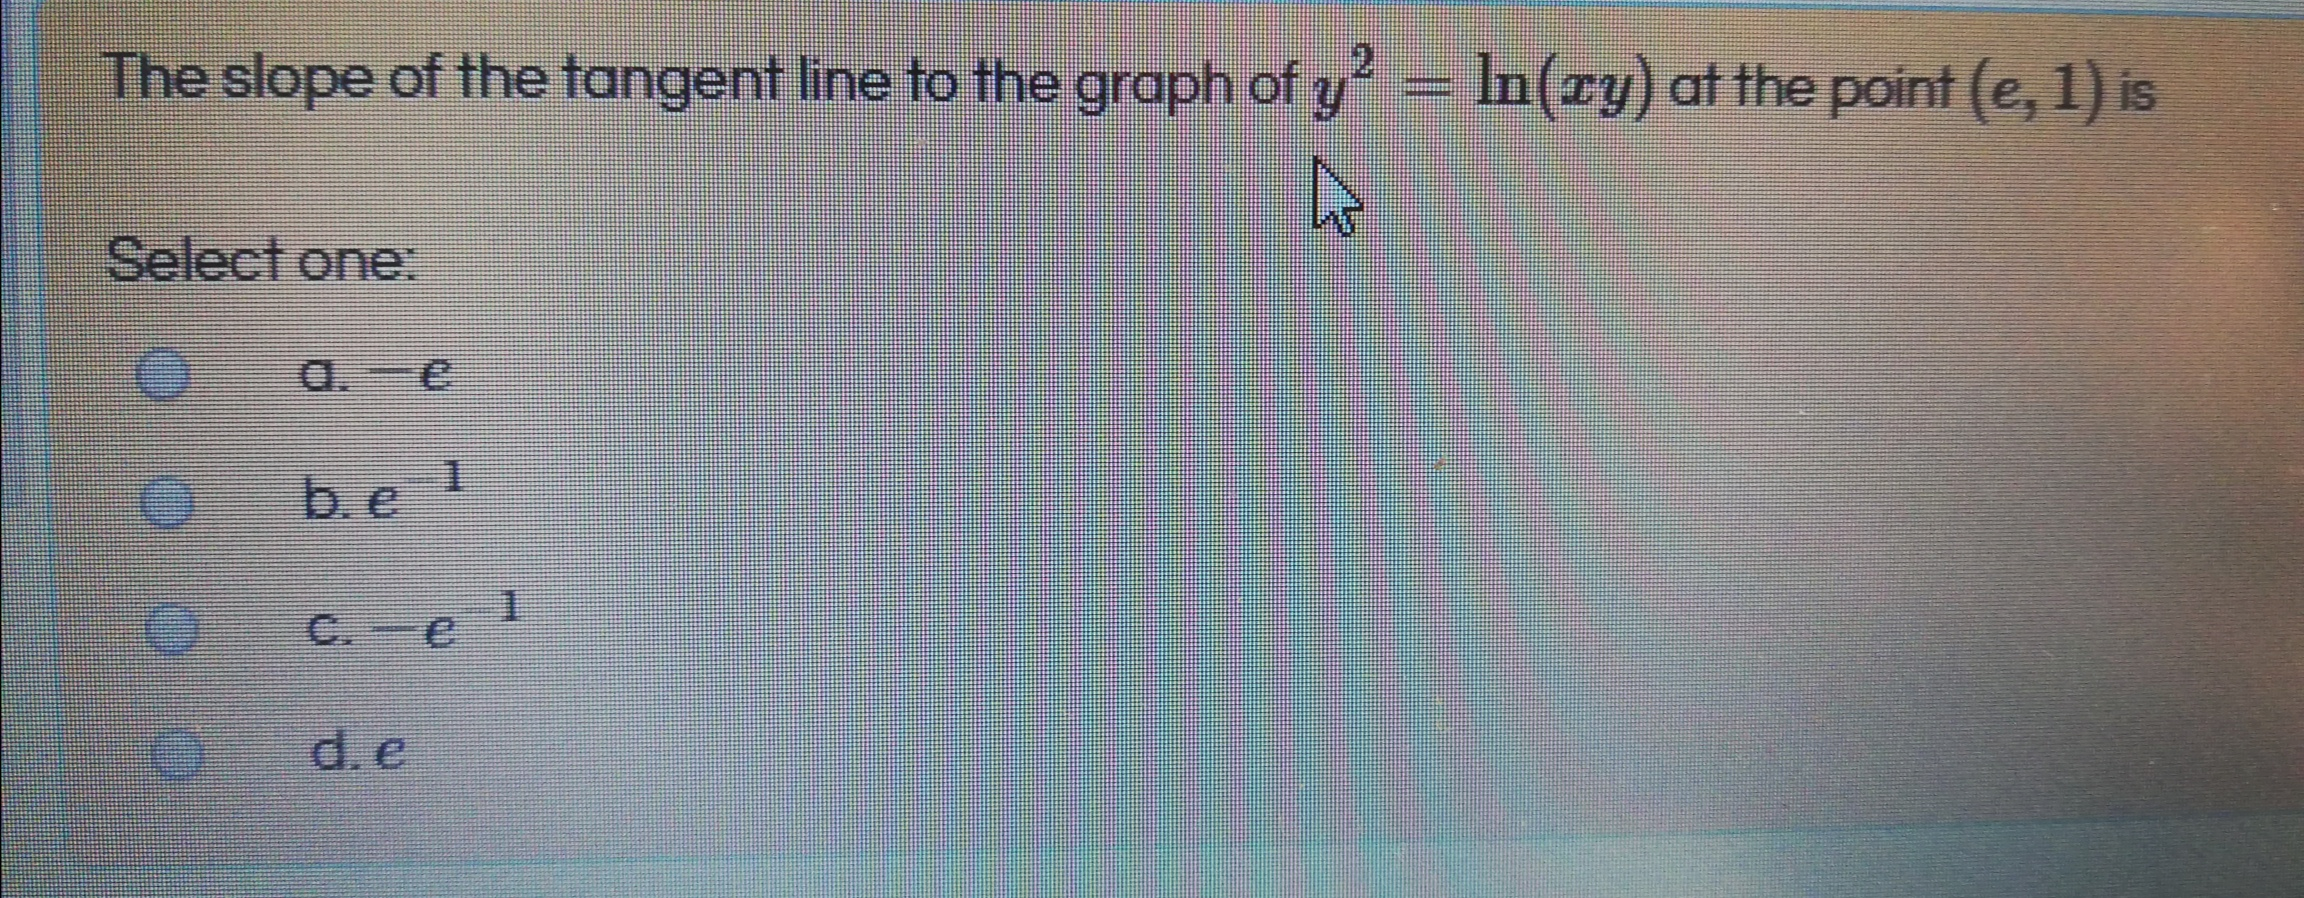 The slope of the tangent line to the graph of y = In(ry) at the point (e, 1) is .2 Select one: a.-e b.e C. e 1 d. e